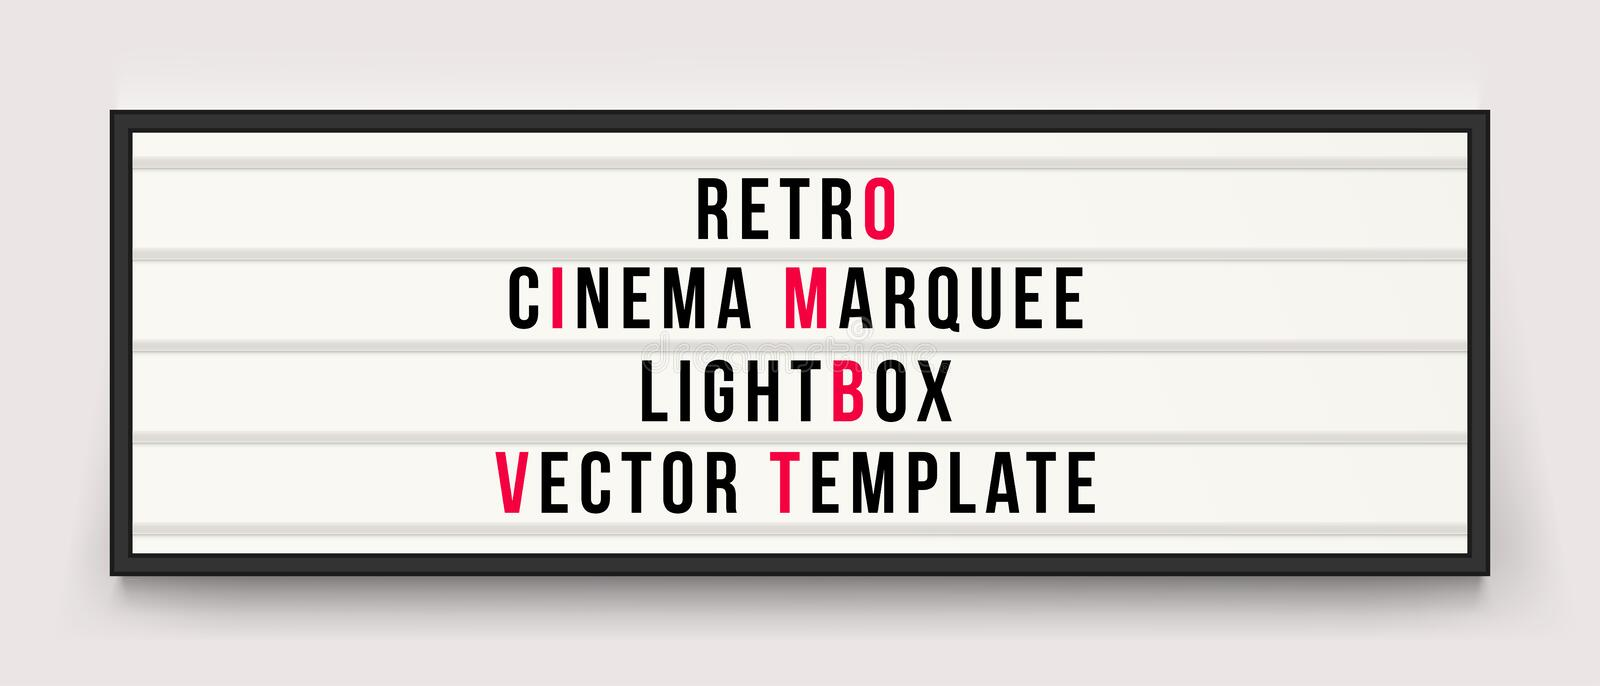 Retro cinema marquee lightbox vector template. Retro cinema marquee or movie signage lightbox in frame vector template stock illustration